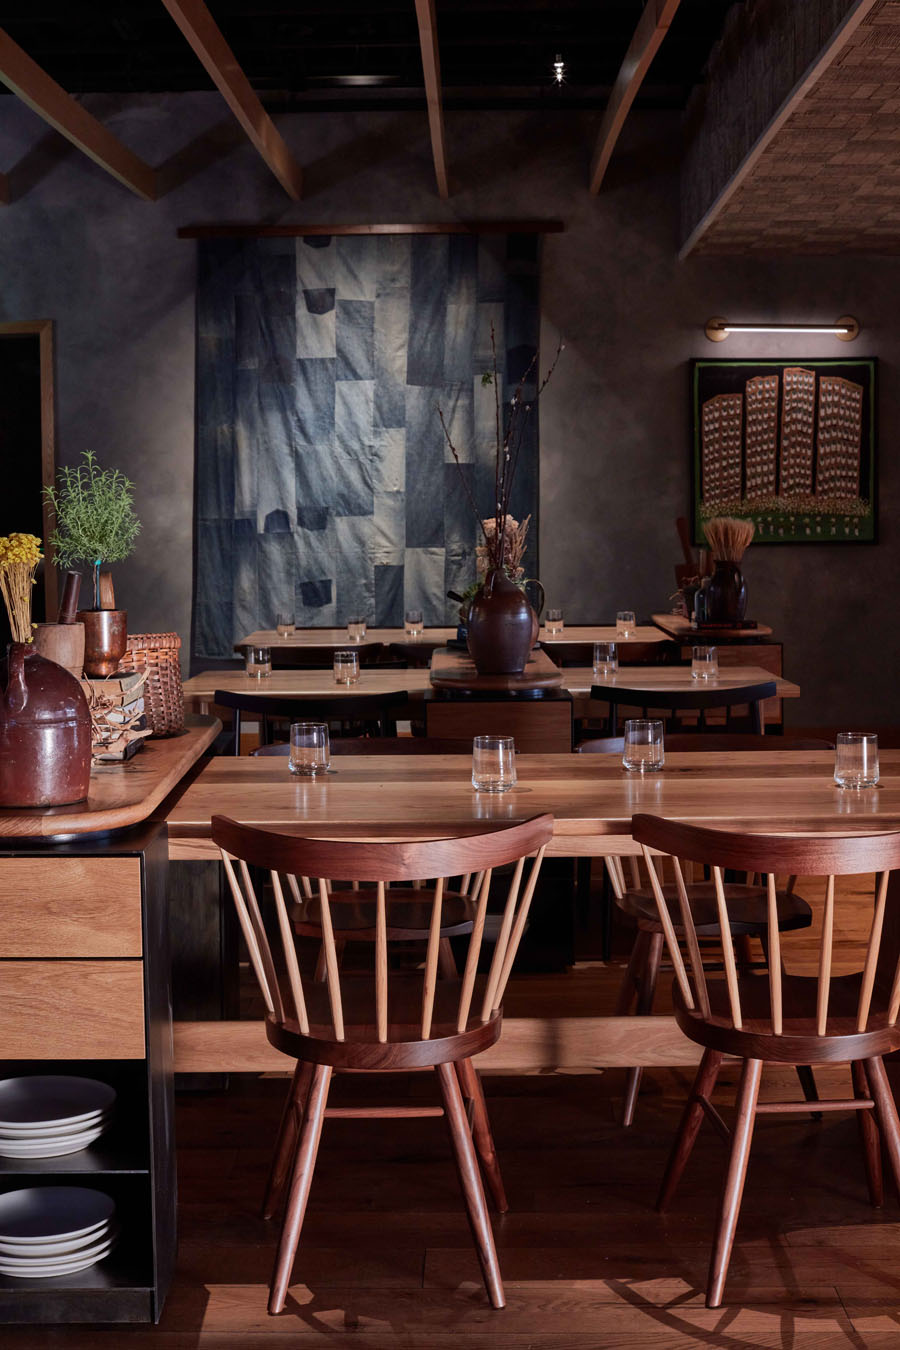 interior of restaurant showing wood tables and chairs and quilt hanging on wall